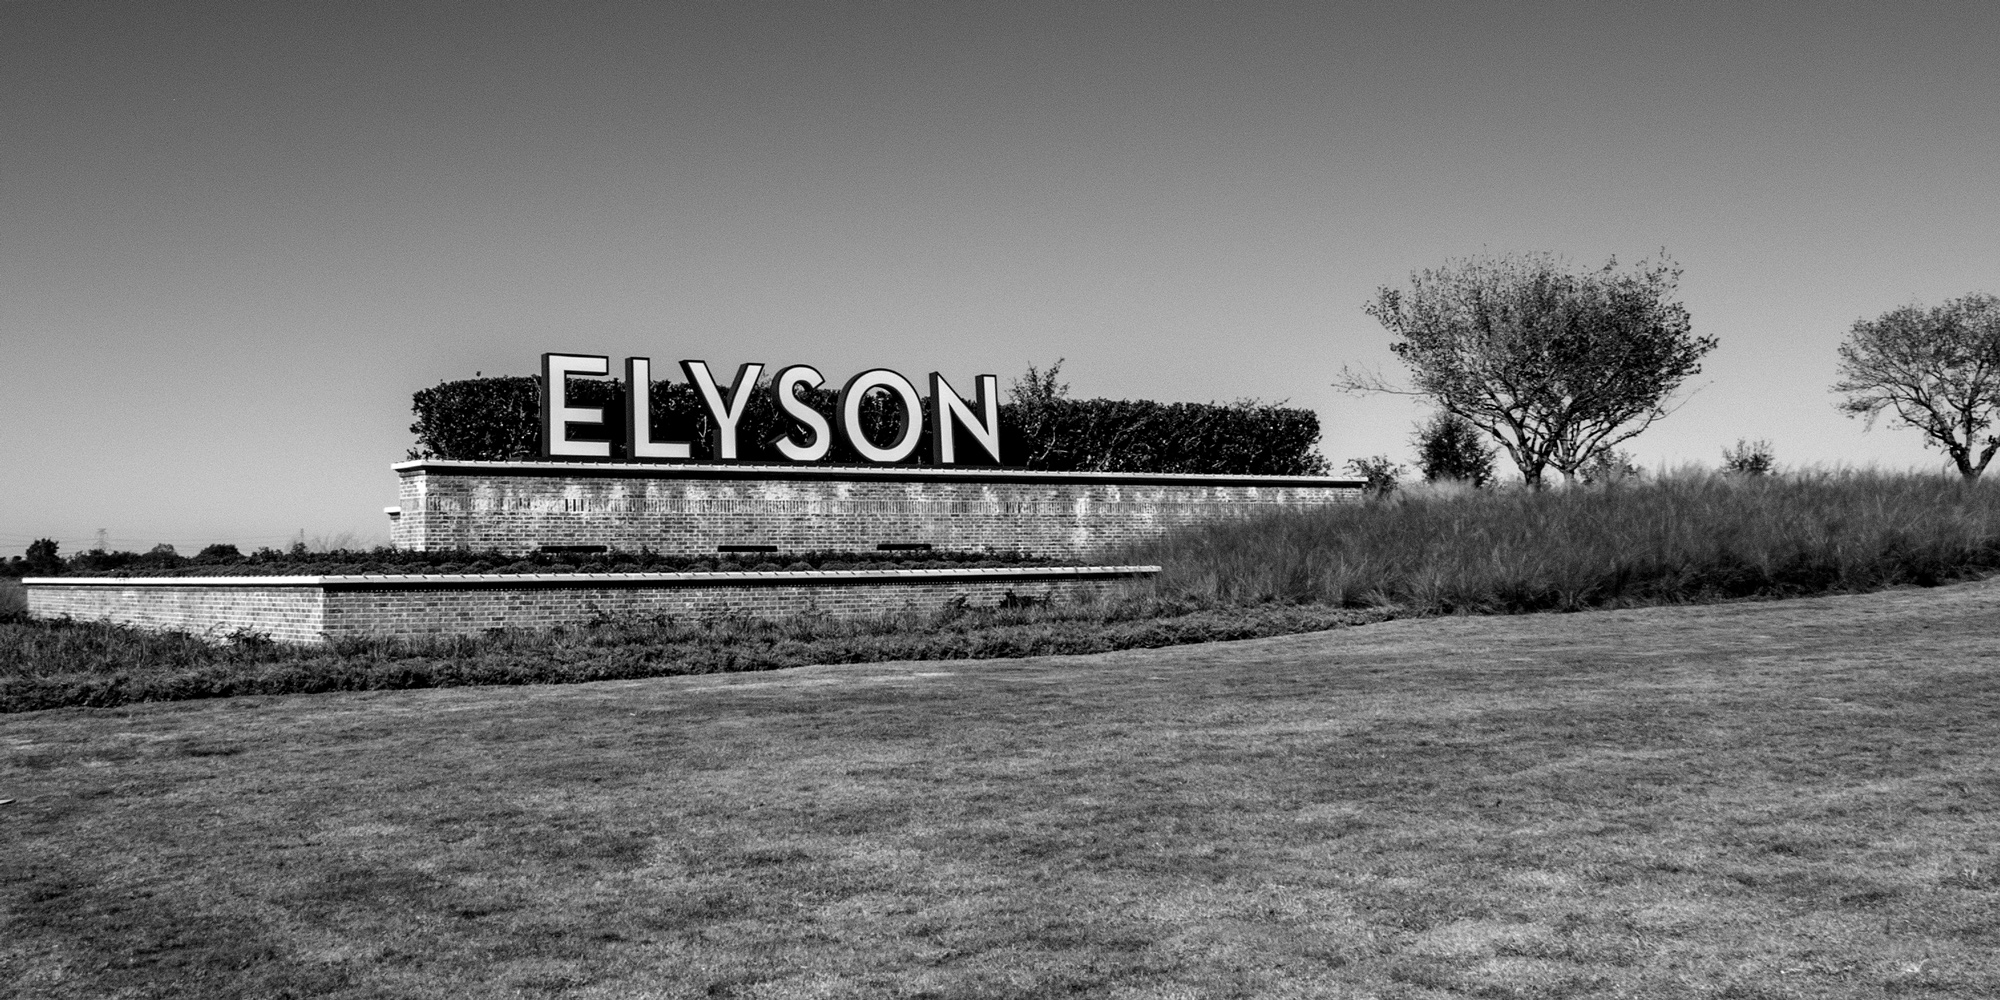 Elyson Community Gateway with large free standing fabricated and illuminated letters